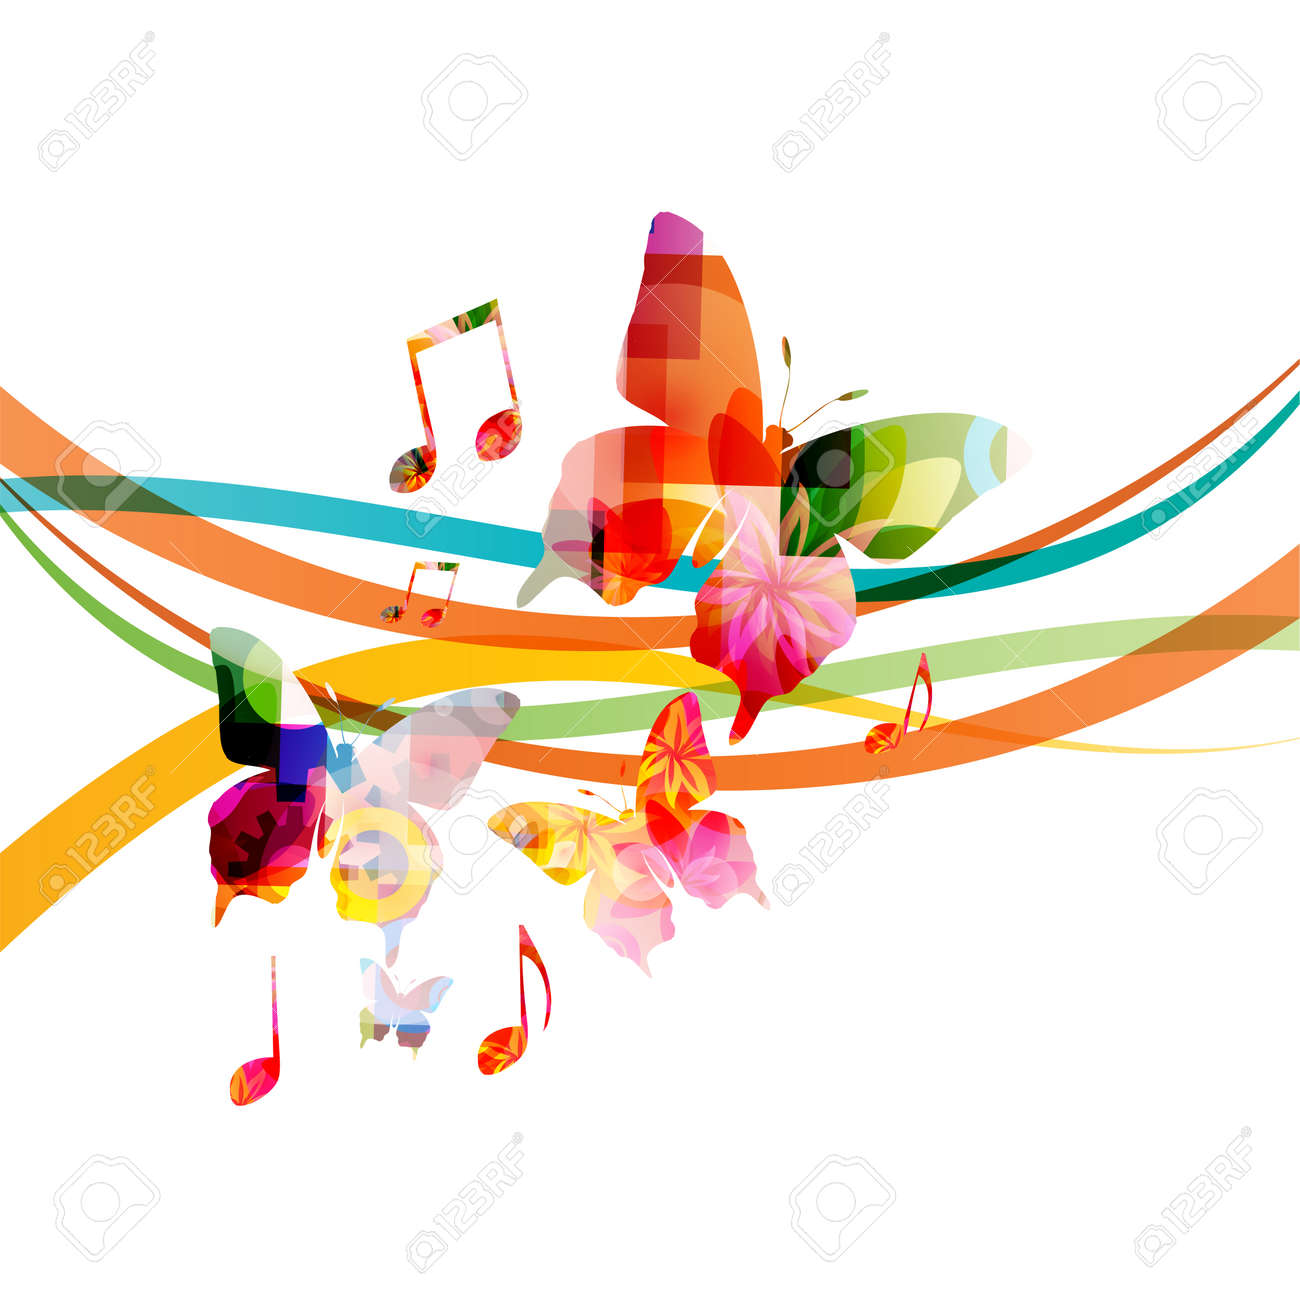 Music background with colorful music notes and butterflies vector illustration design. Artistic music festival poster, live concert events, music notes signs and symbols - 115451257